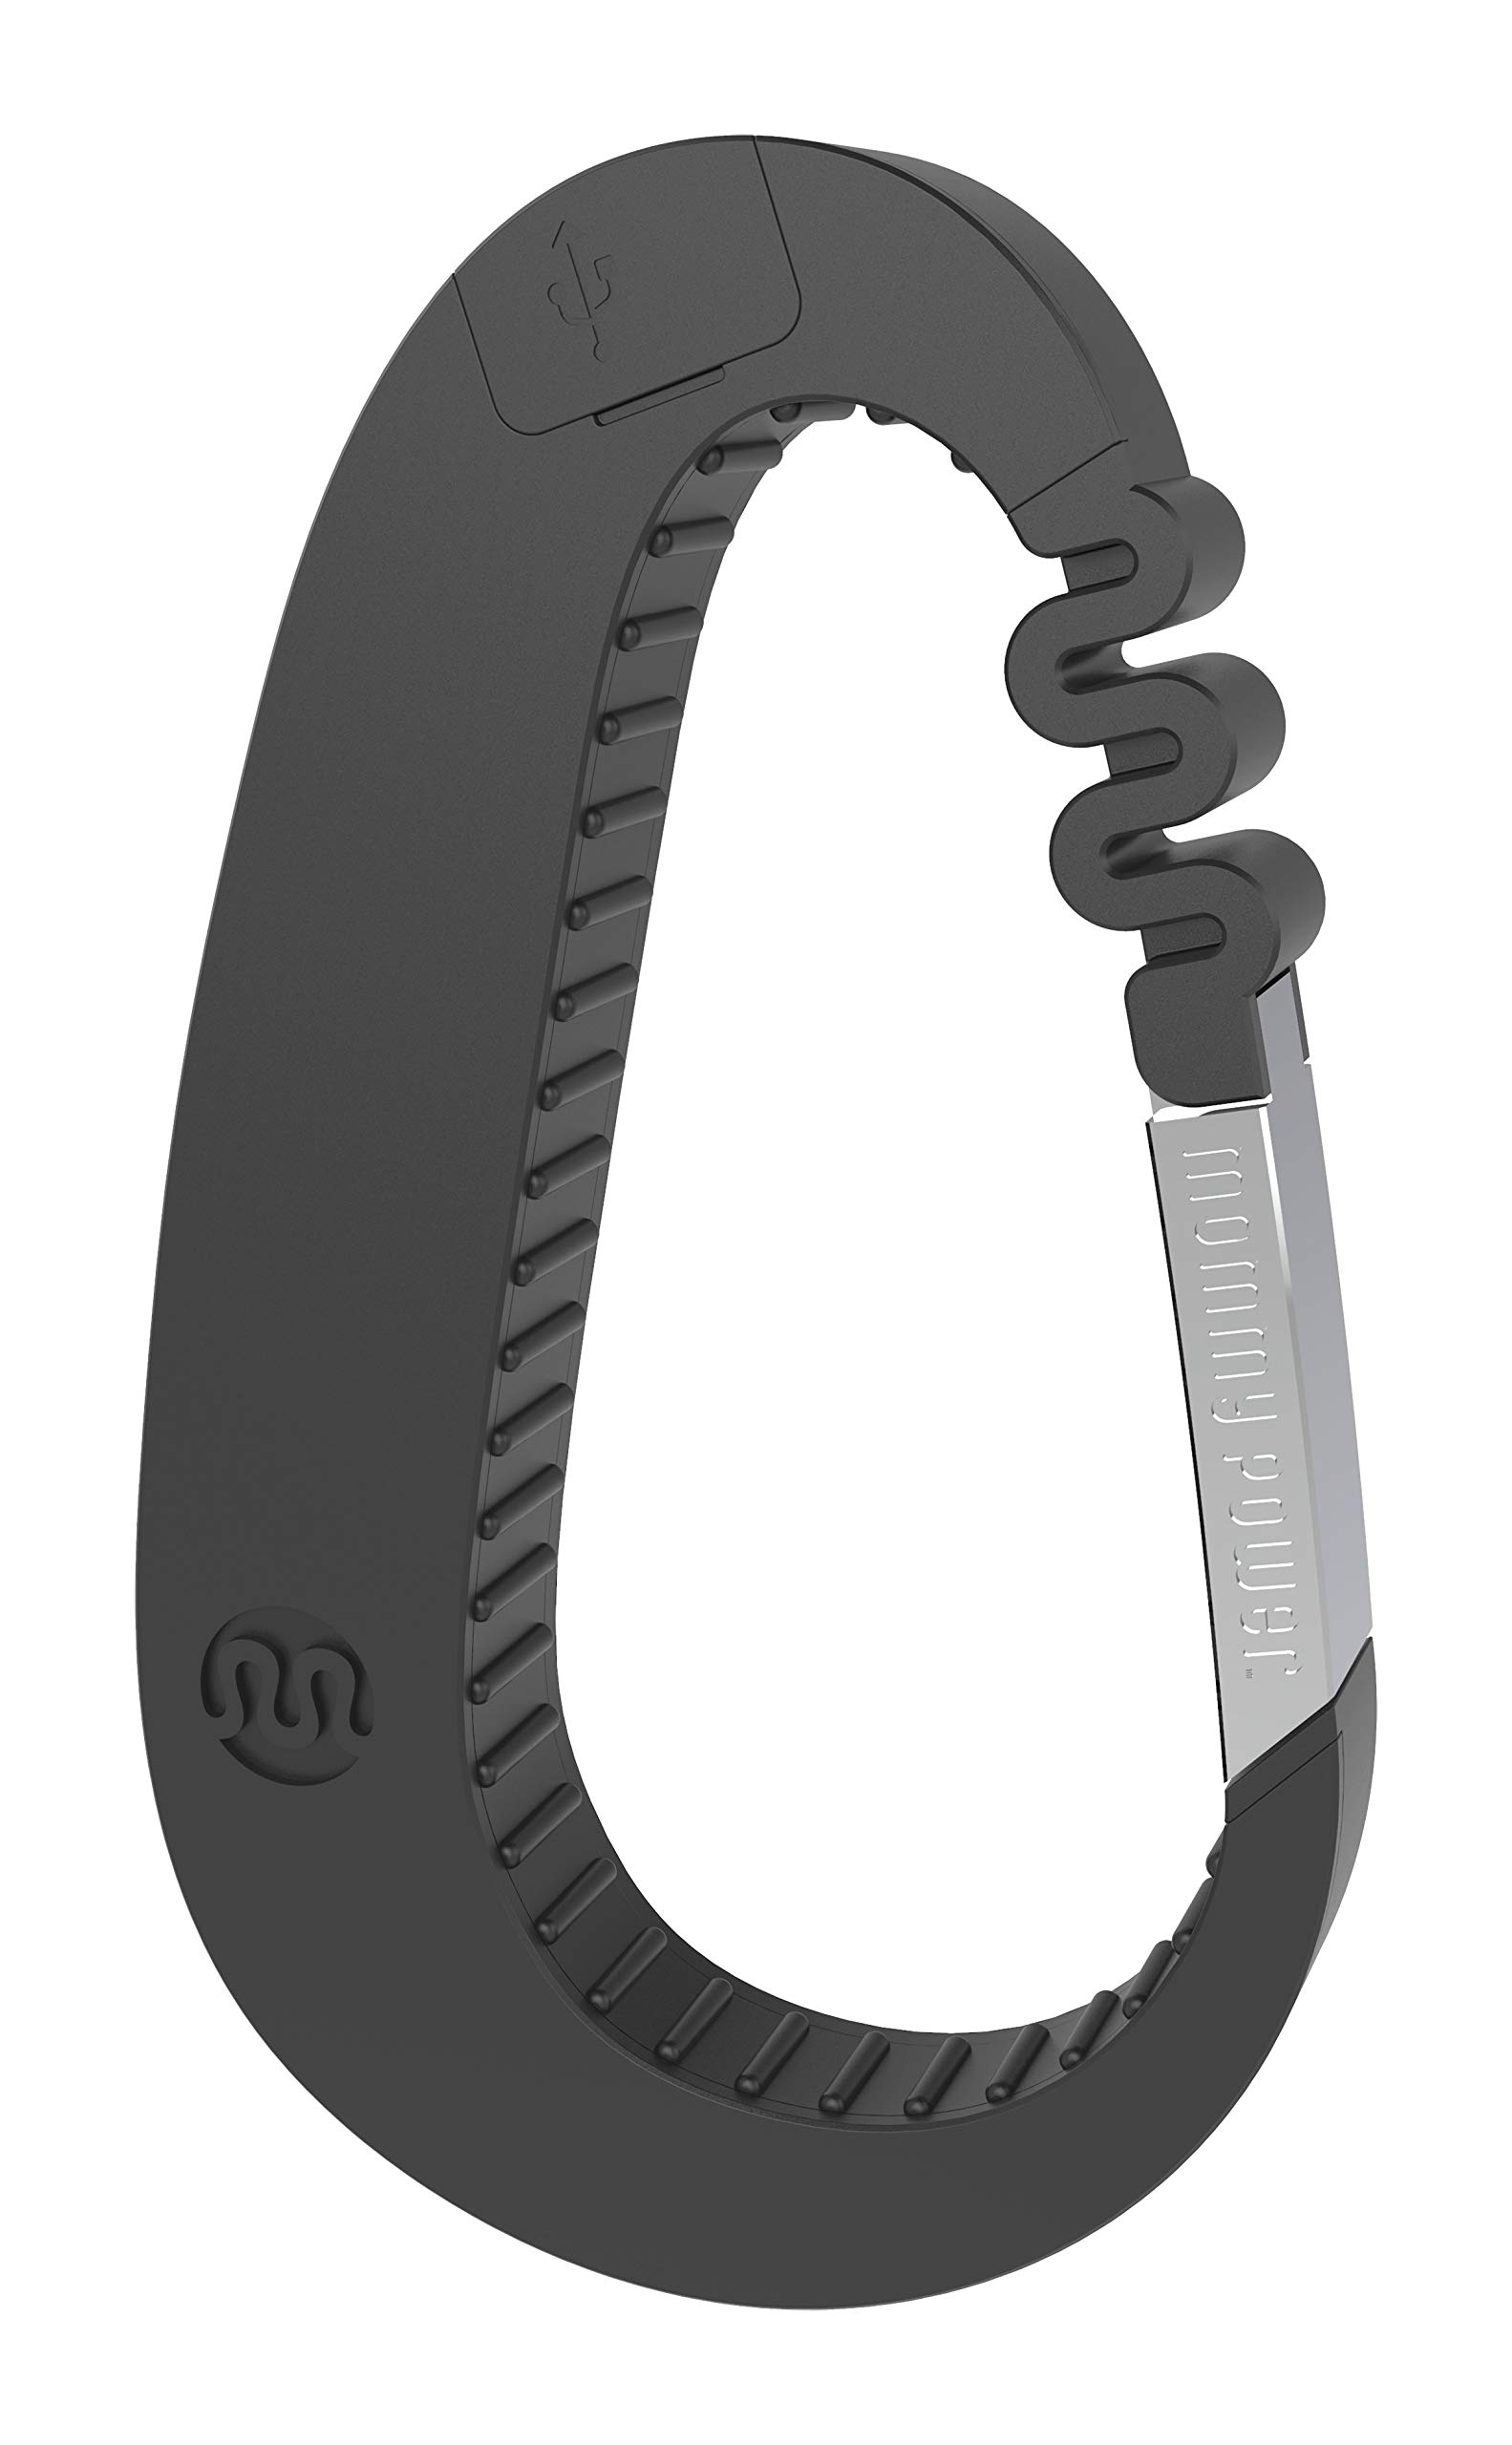 Mommy Power Stroller Power Stroller Hook & Power Bank - Carry-All Hook for The mom on The Go (Midnight Black) by Mommy power